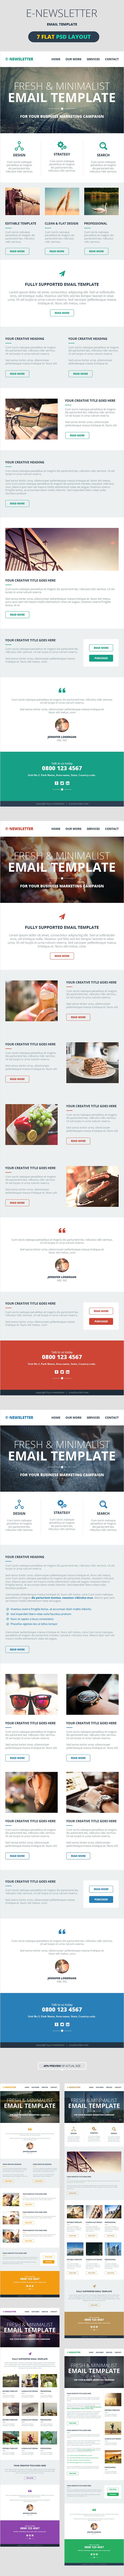 Best 25 Email templates ideas – Professional Email Template